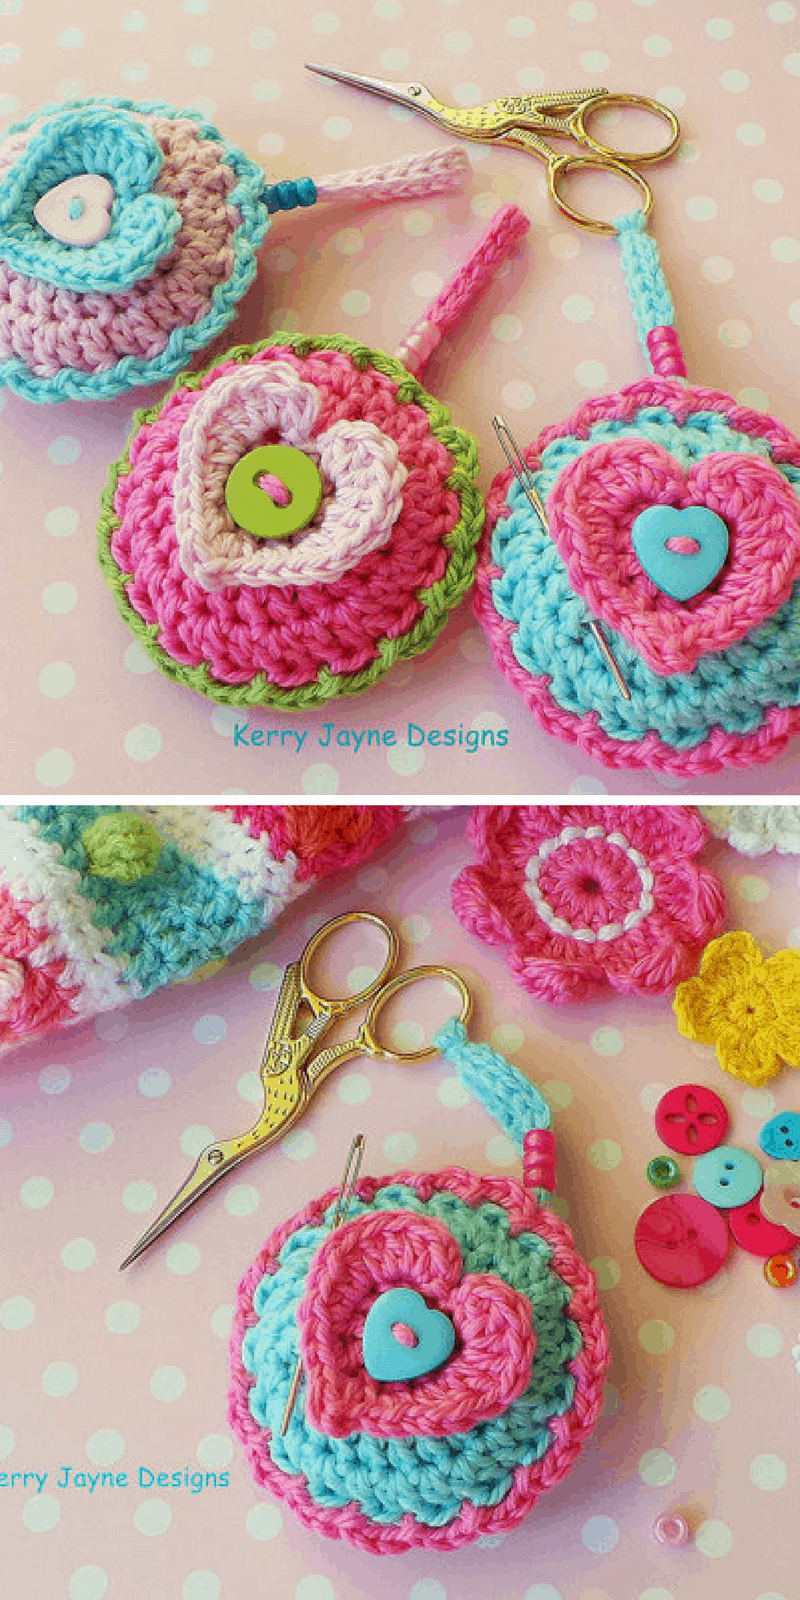 CROCHET PATTERN Scissor Keeper crochet pattern - Pin cushion crochet pattern - Heart crochet pattern